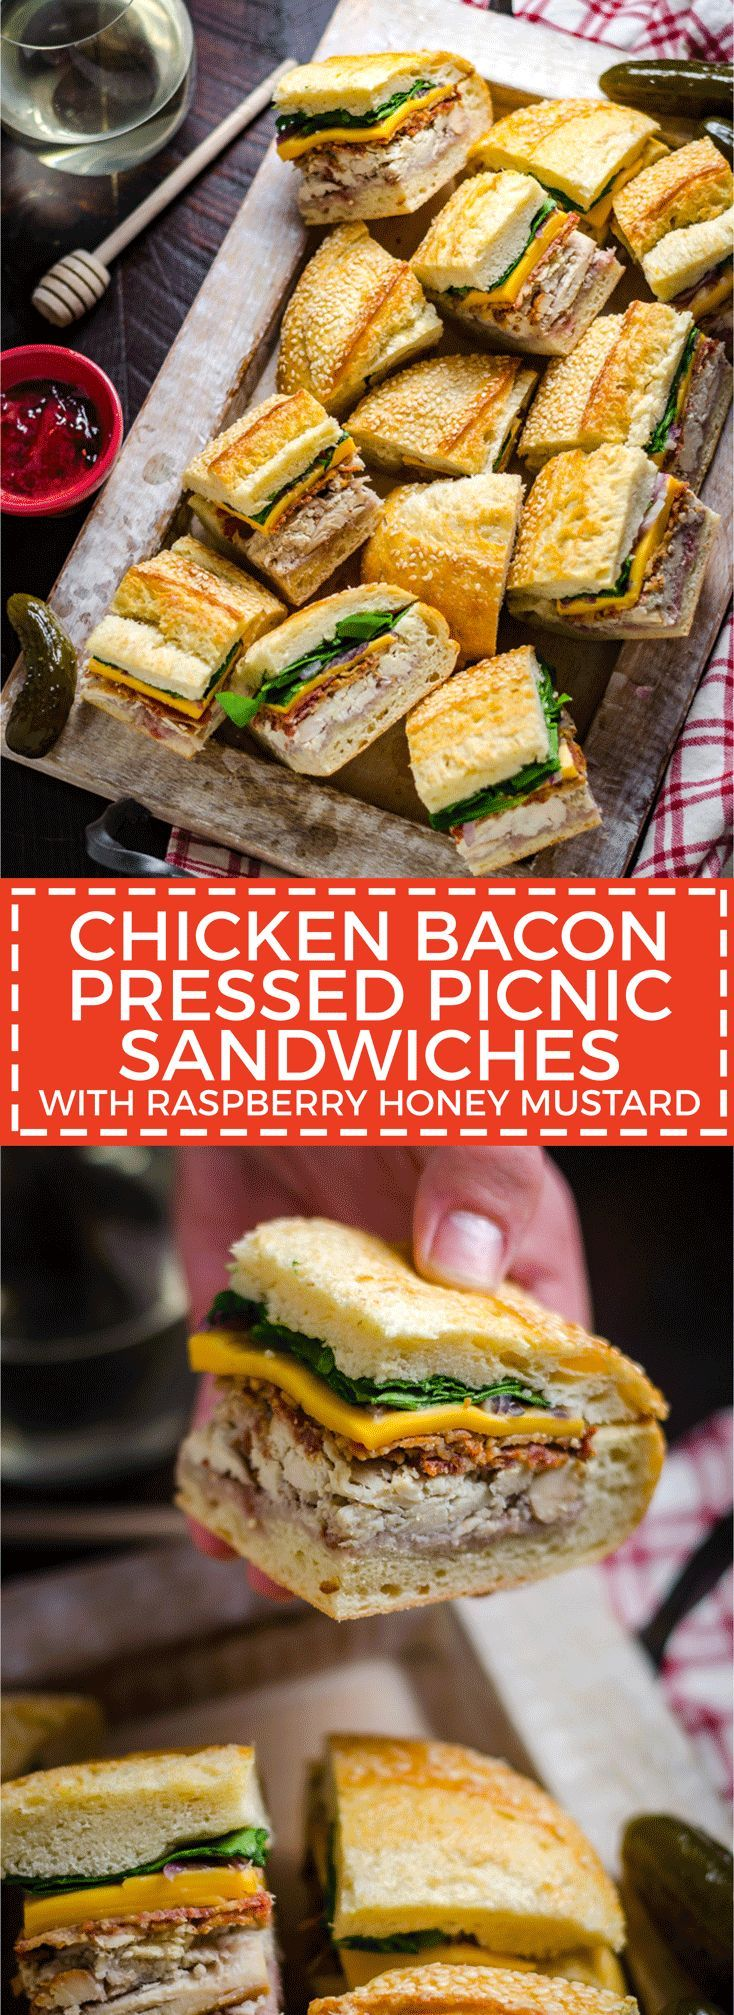 Chicken Bacon Pressed Picnic Sandwiches with Raspberry Honey Mustard – Host T…